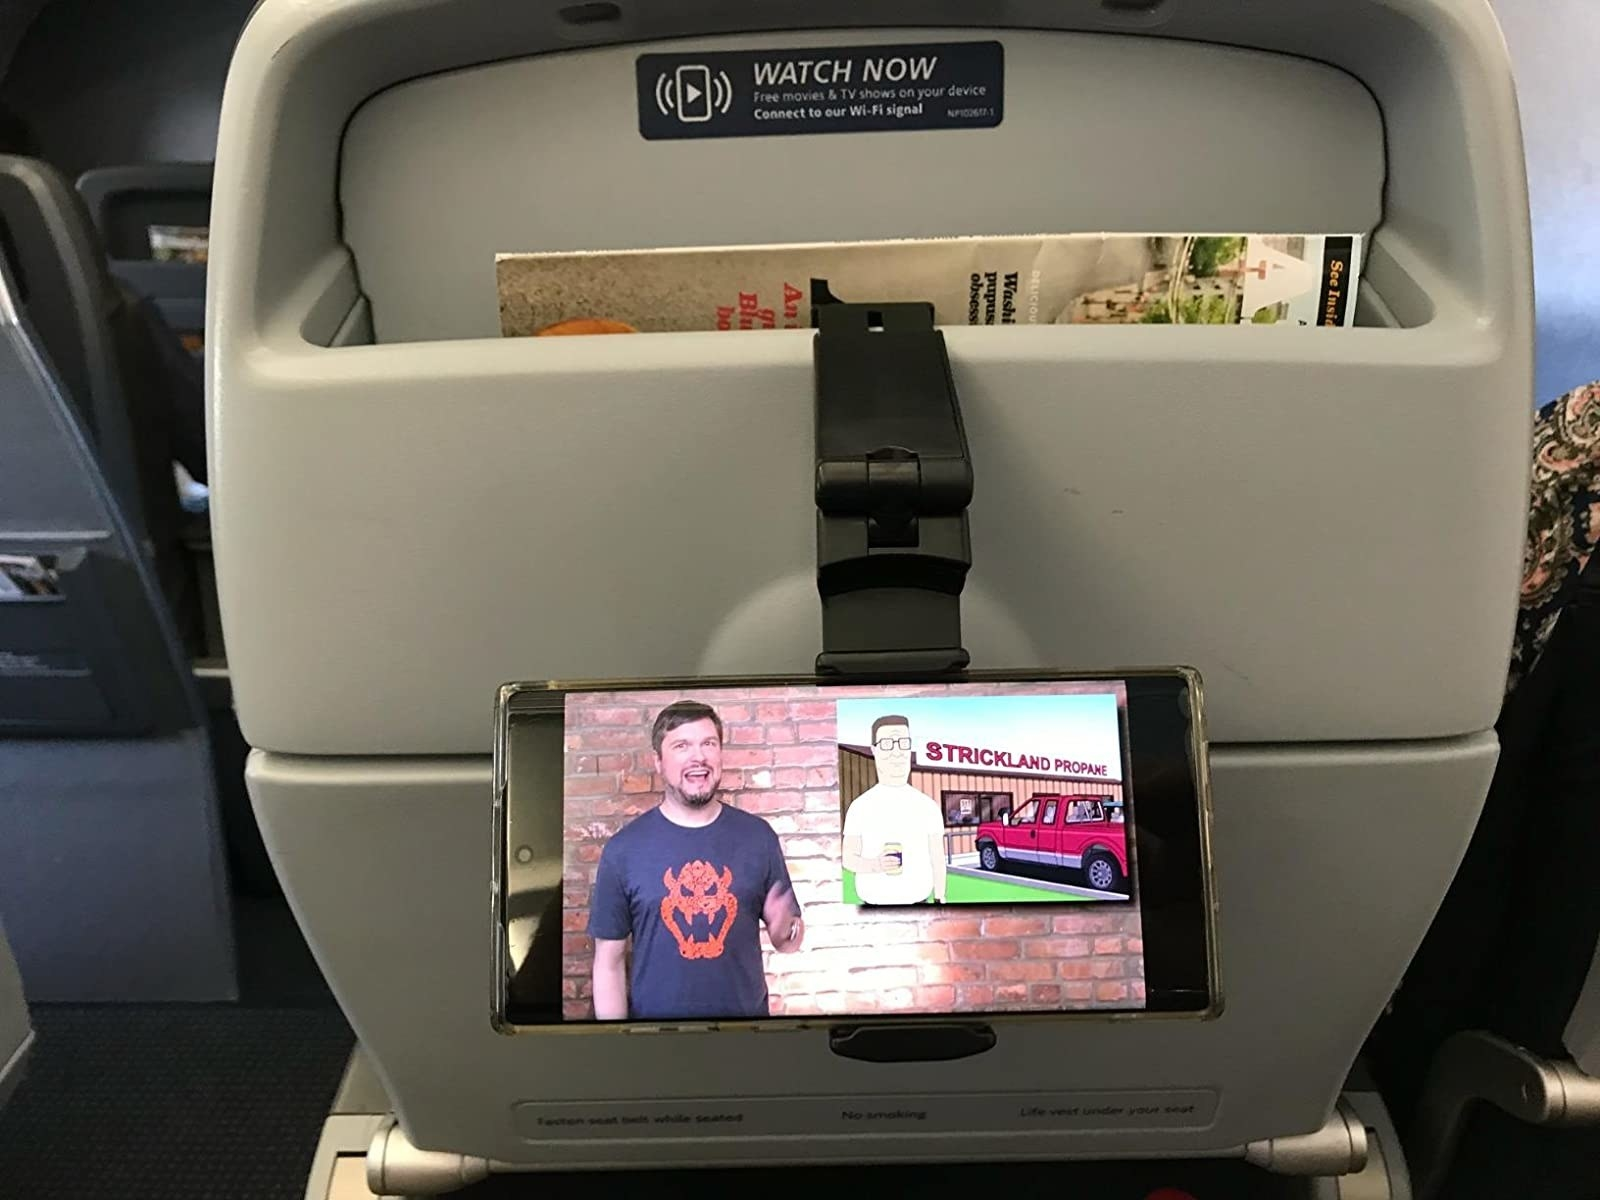 reviewer's phone mounted on the back of an airplane seat